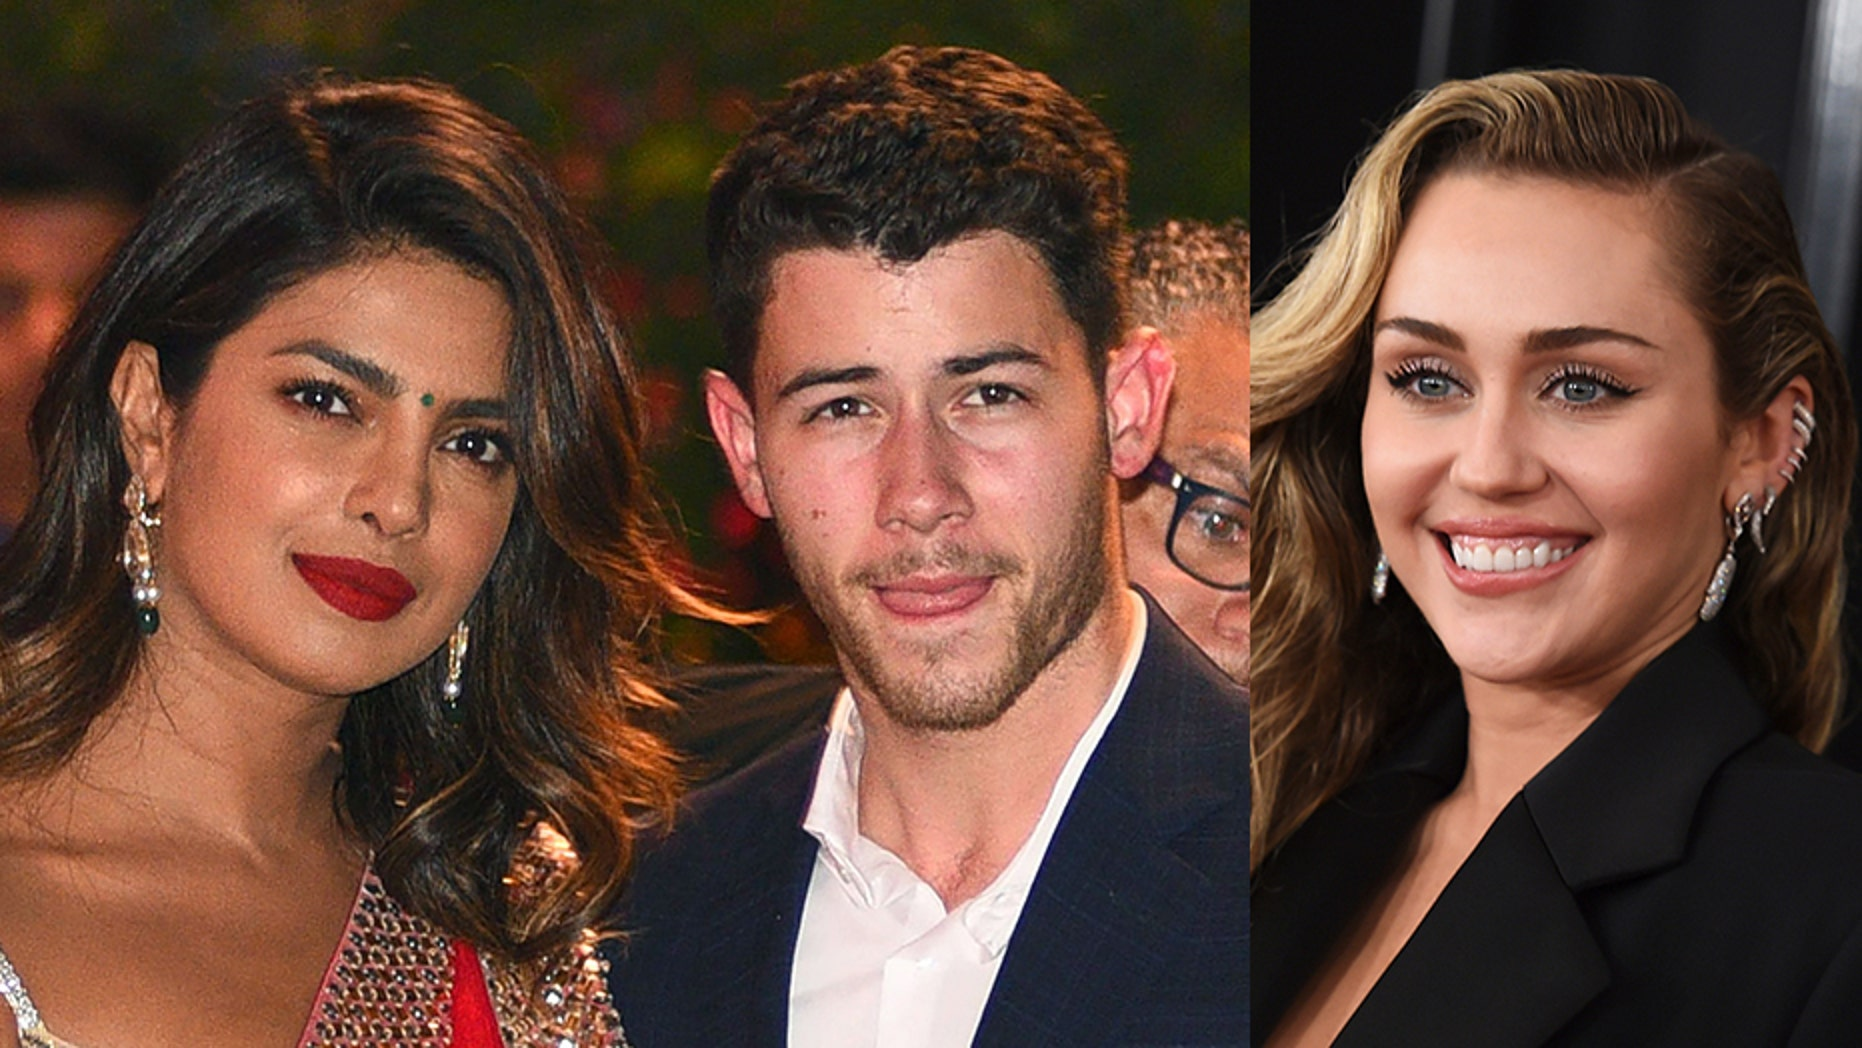 Nick Jonas' wife Priyanka Chopra had a few words in response toMiley Cyrus' photo of her private messages with Jonas.